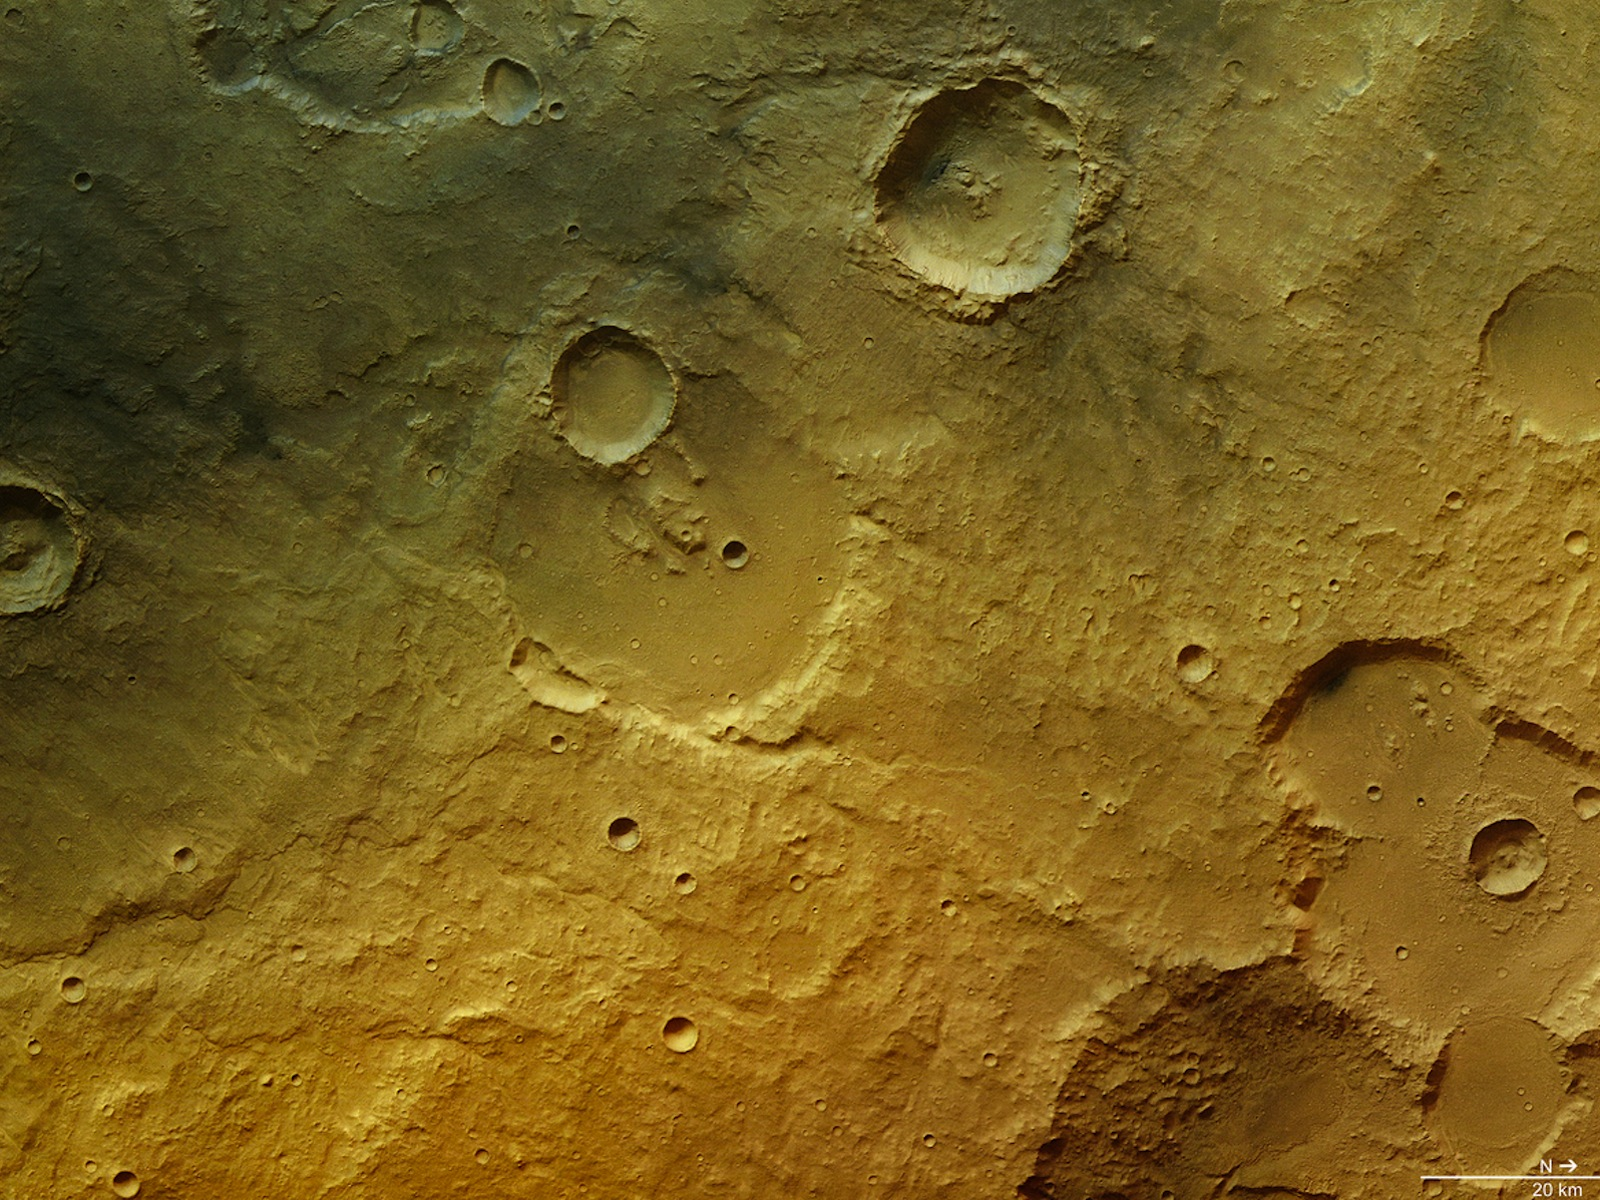 Tagus Valles space wallpaper